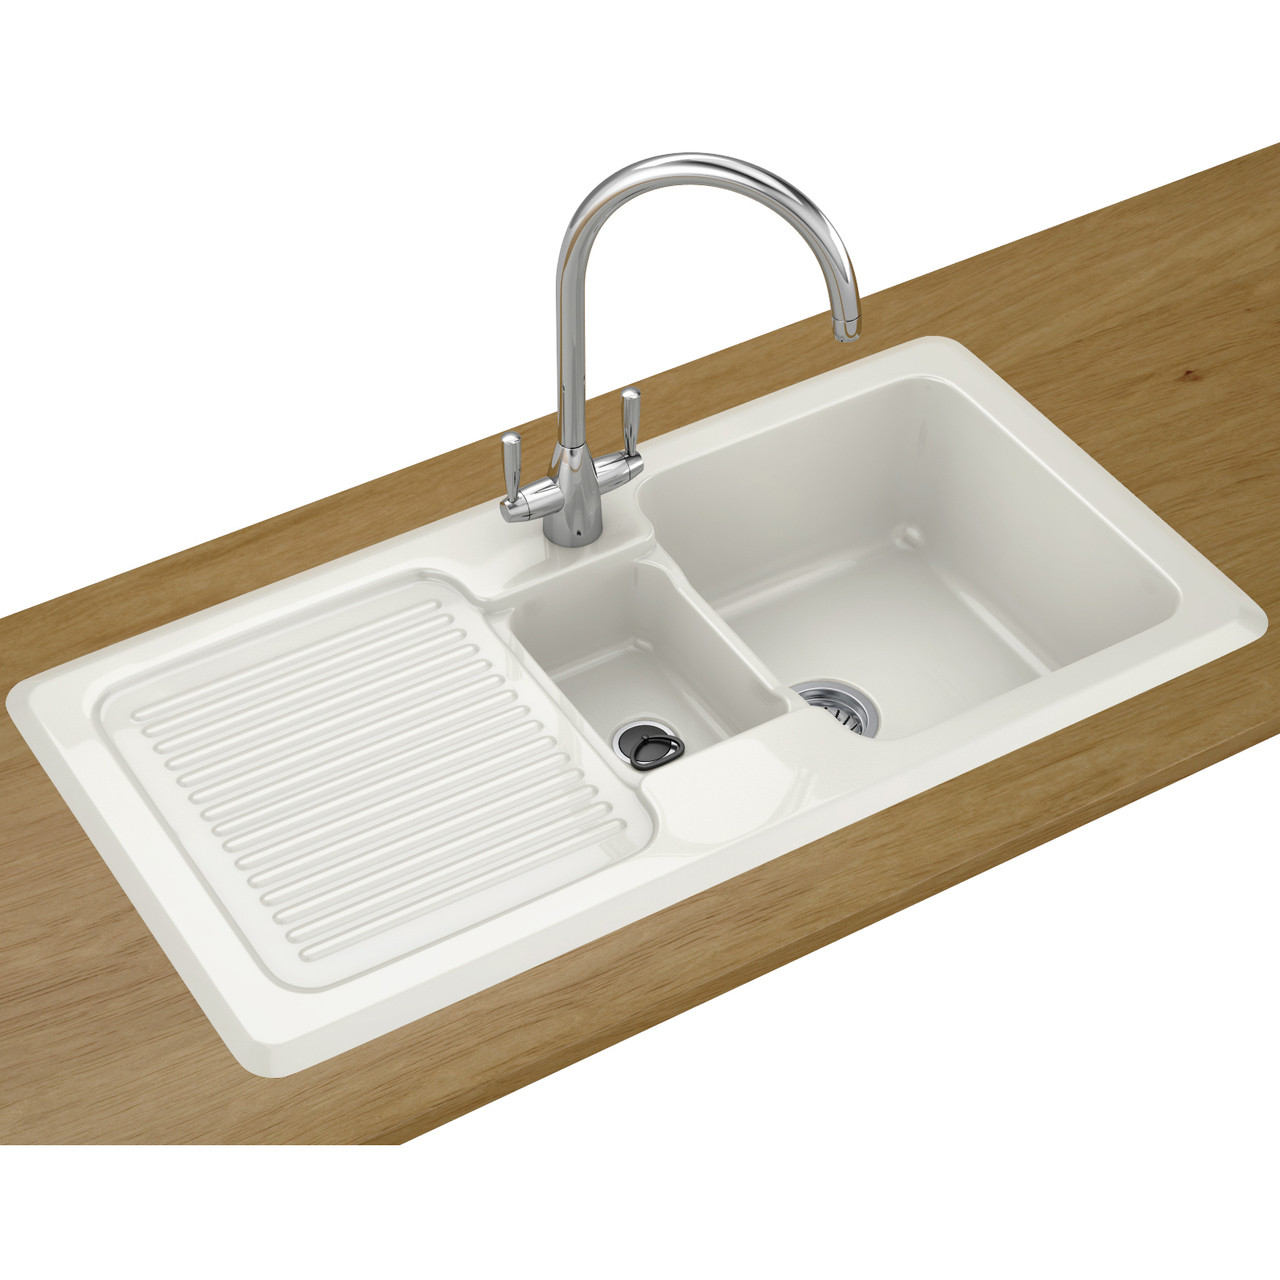 Kitchen Sinks Franke Vbk651 Ceramic Kitchen Sink Sinks